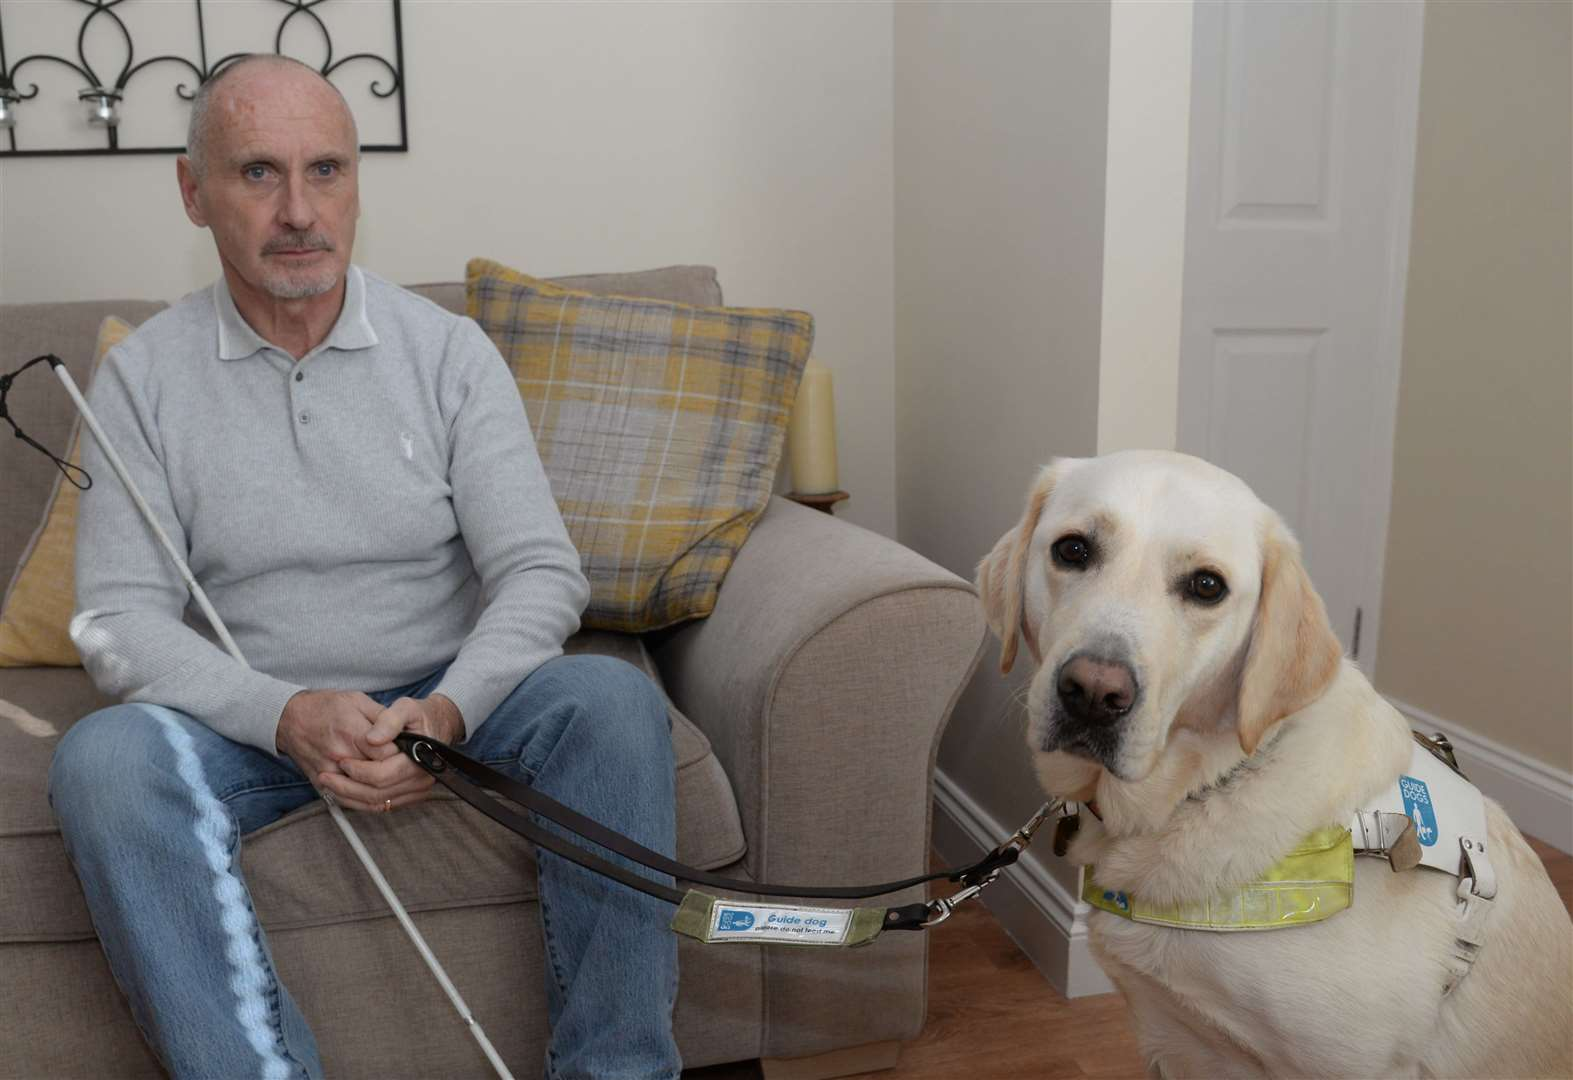 Blind man clings desperately to guide dog during attack